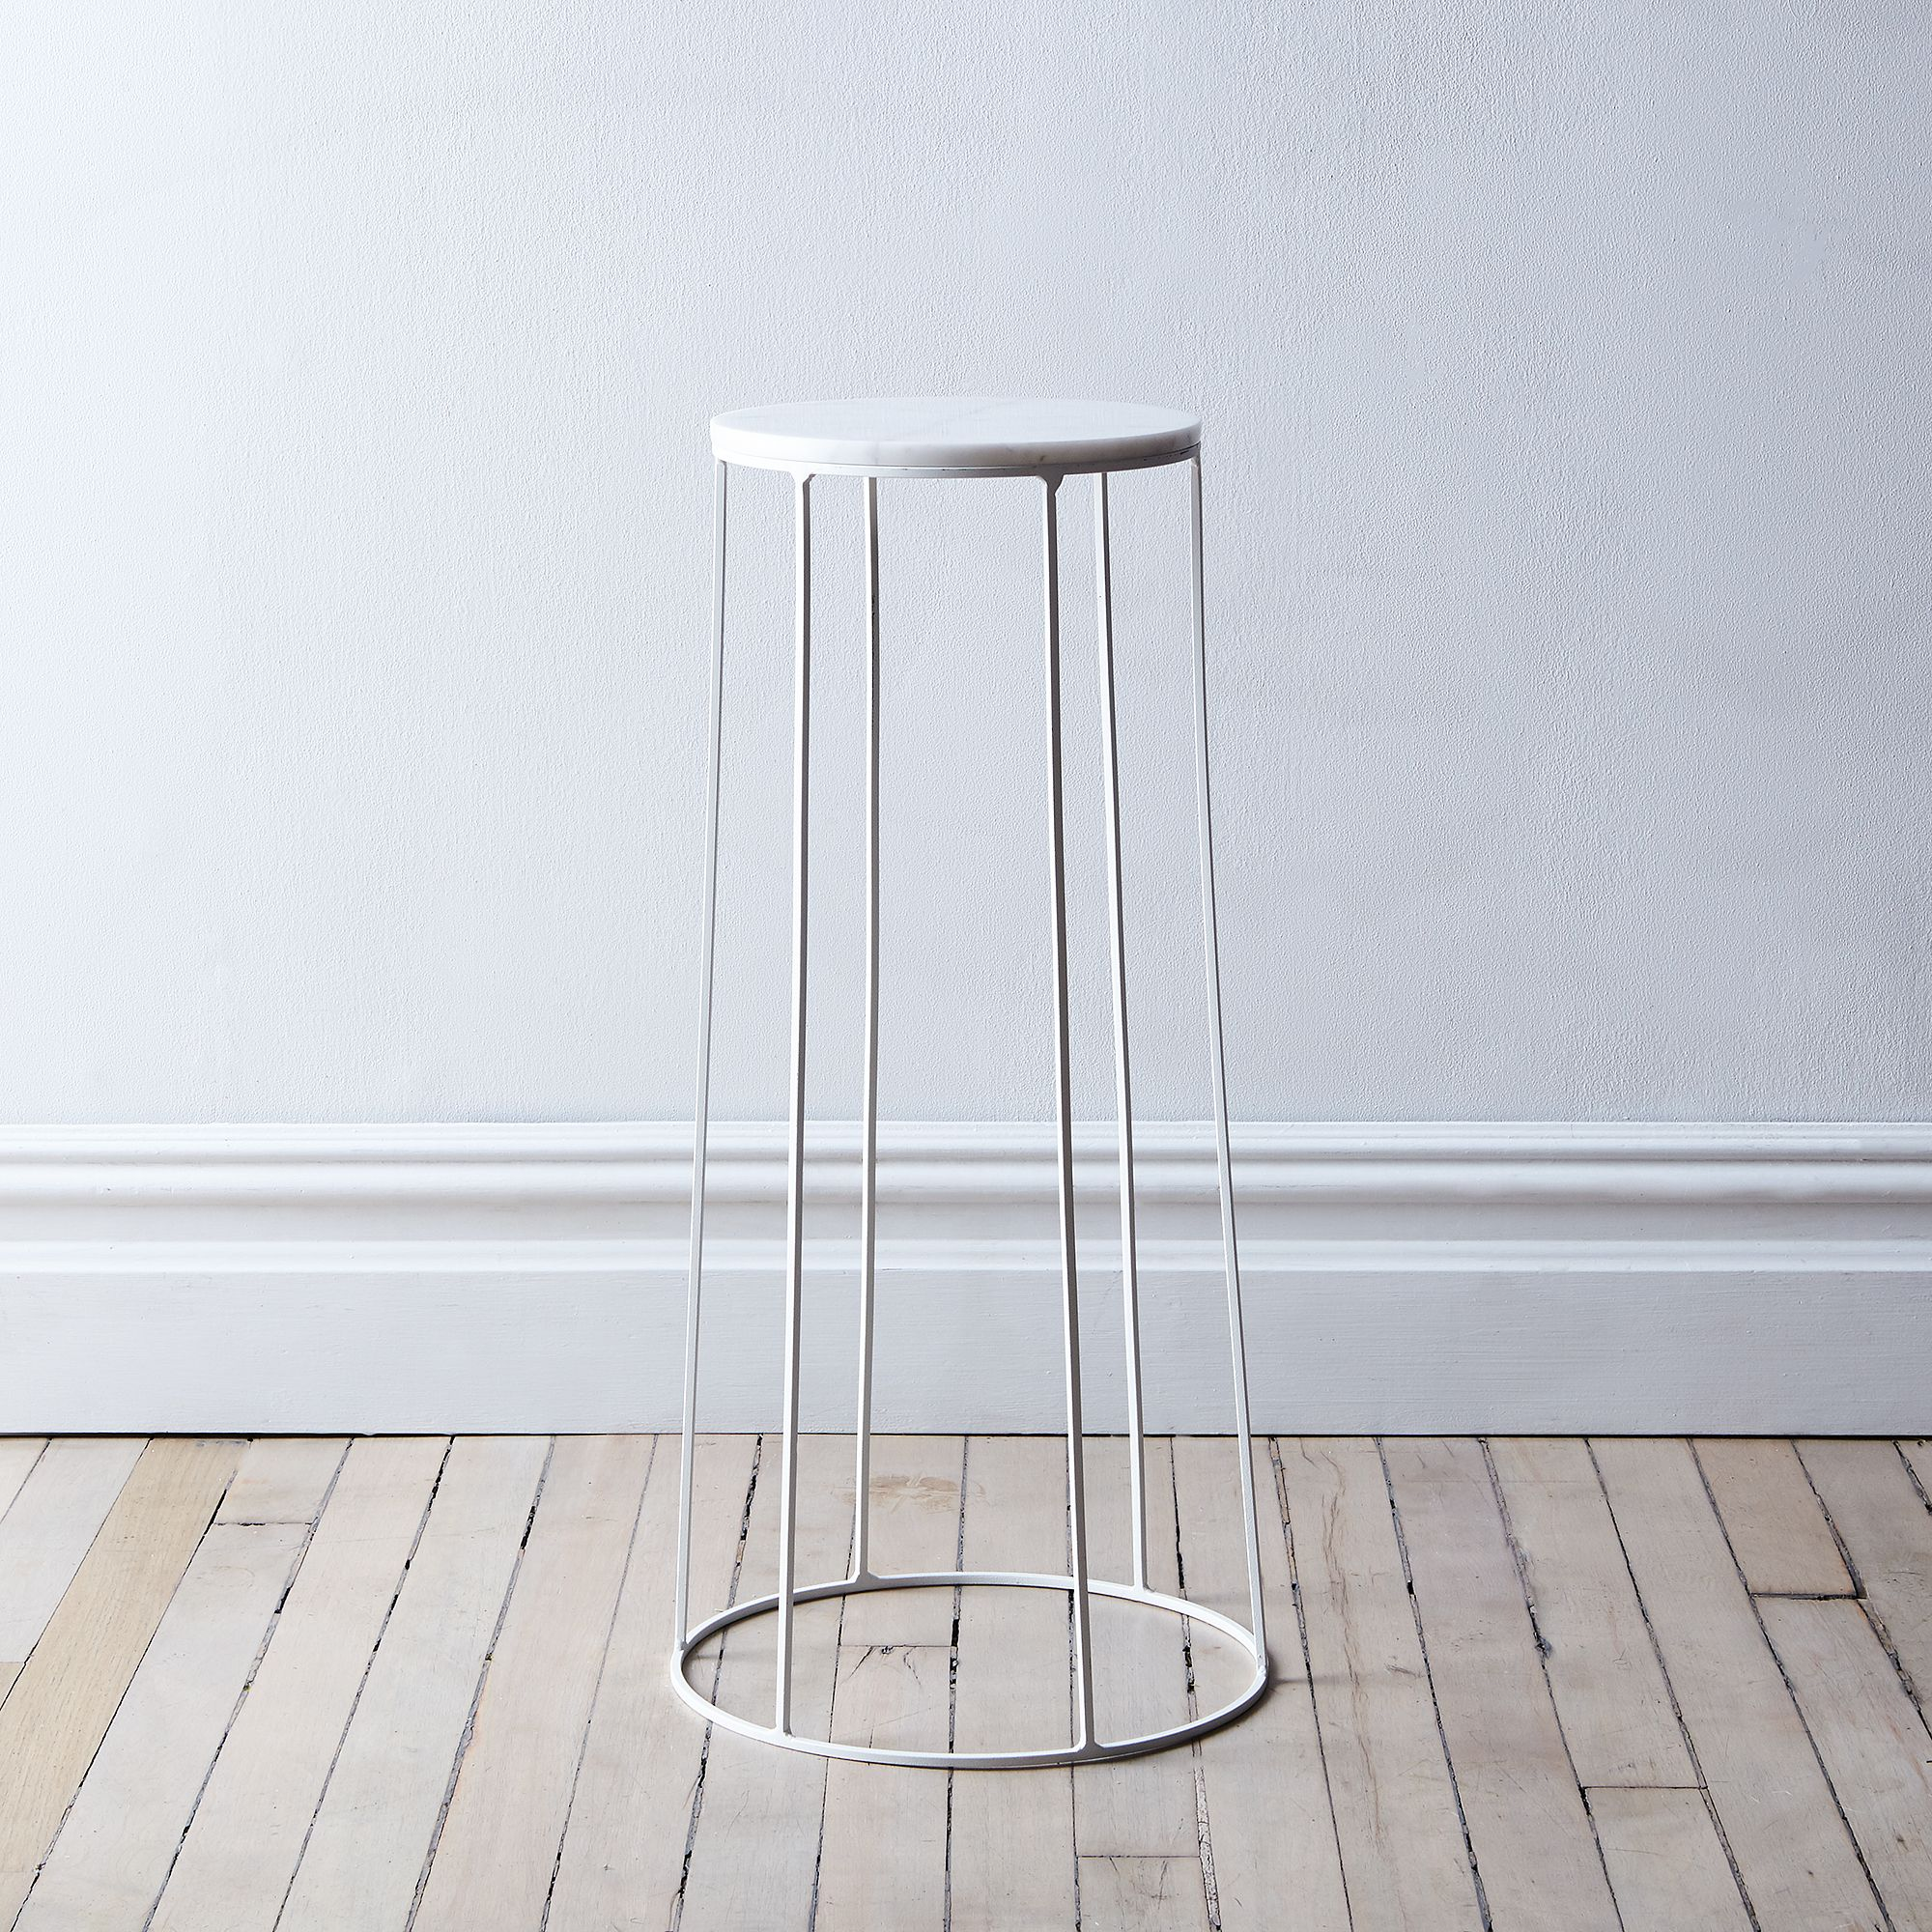 0eaceb23 beae 430f abee ff46eca9ab73  2017 0725 menu marble topped wire side table large white base with white top silo rocky luten 002